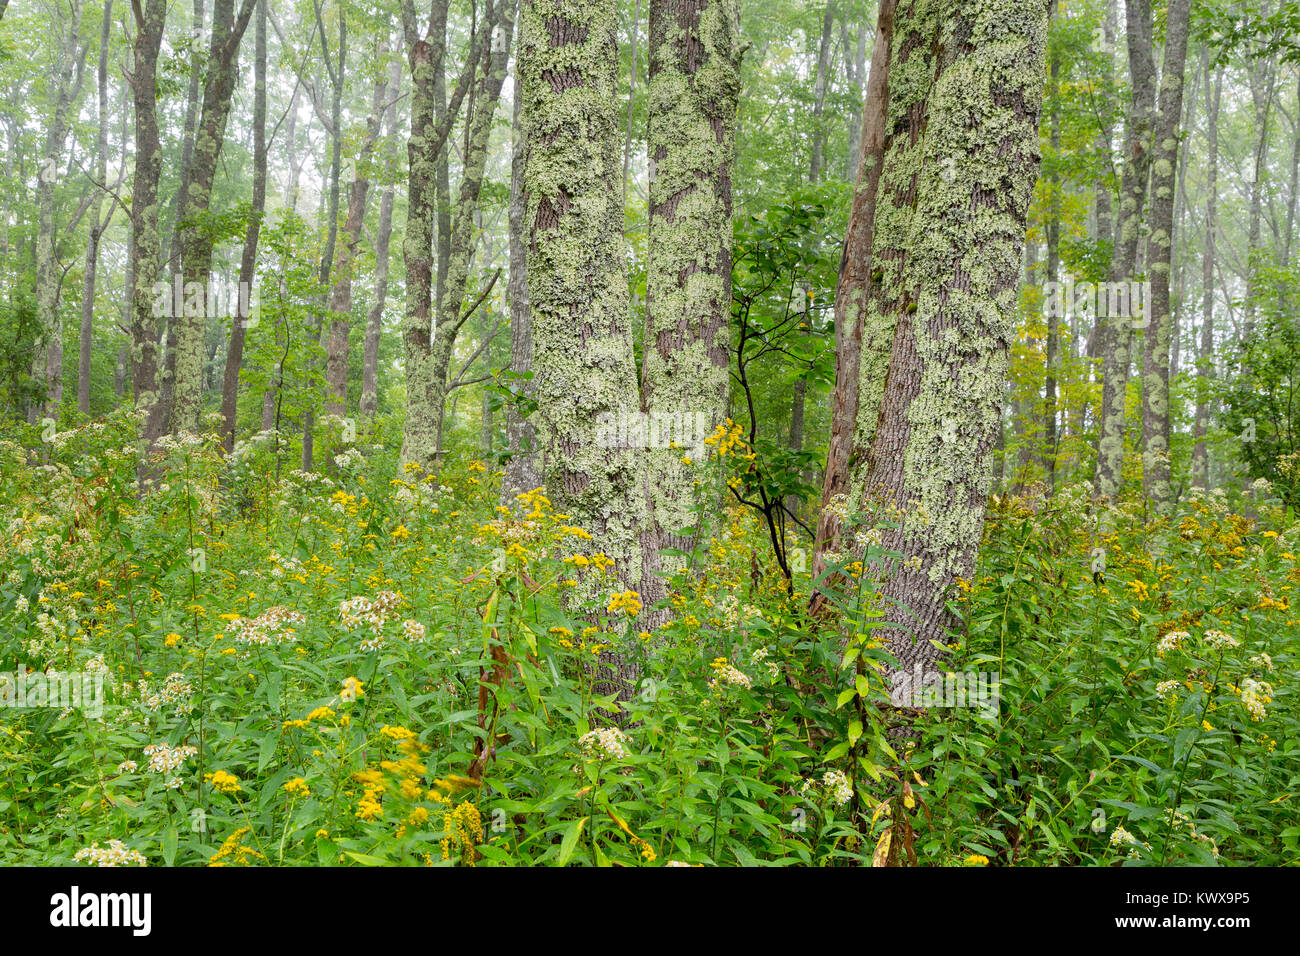 Tree trunks and wildflowers decorating a dense and lush forest along the Otter Cove Trail on Mount Desert Island. Stock Photo